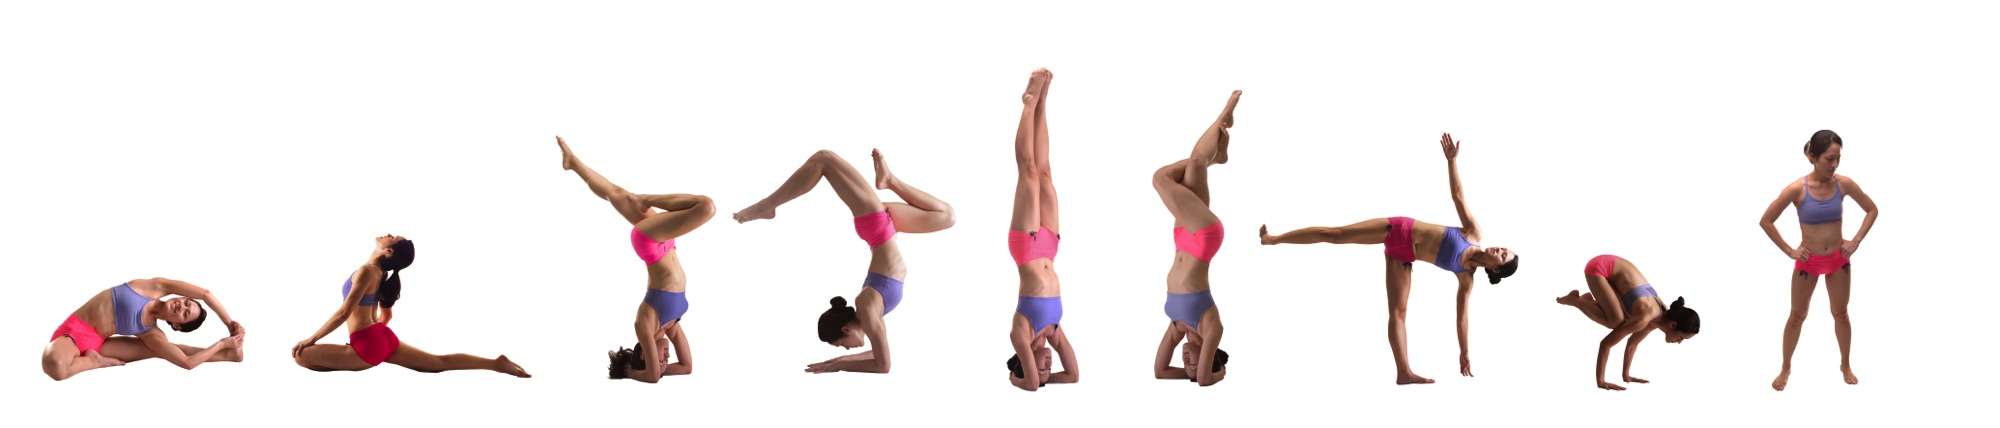 New twist on traditional exercise systems – Yogalates